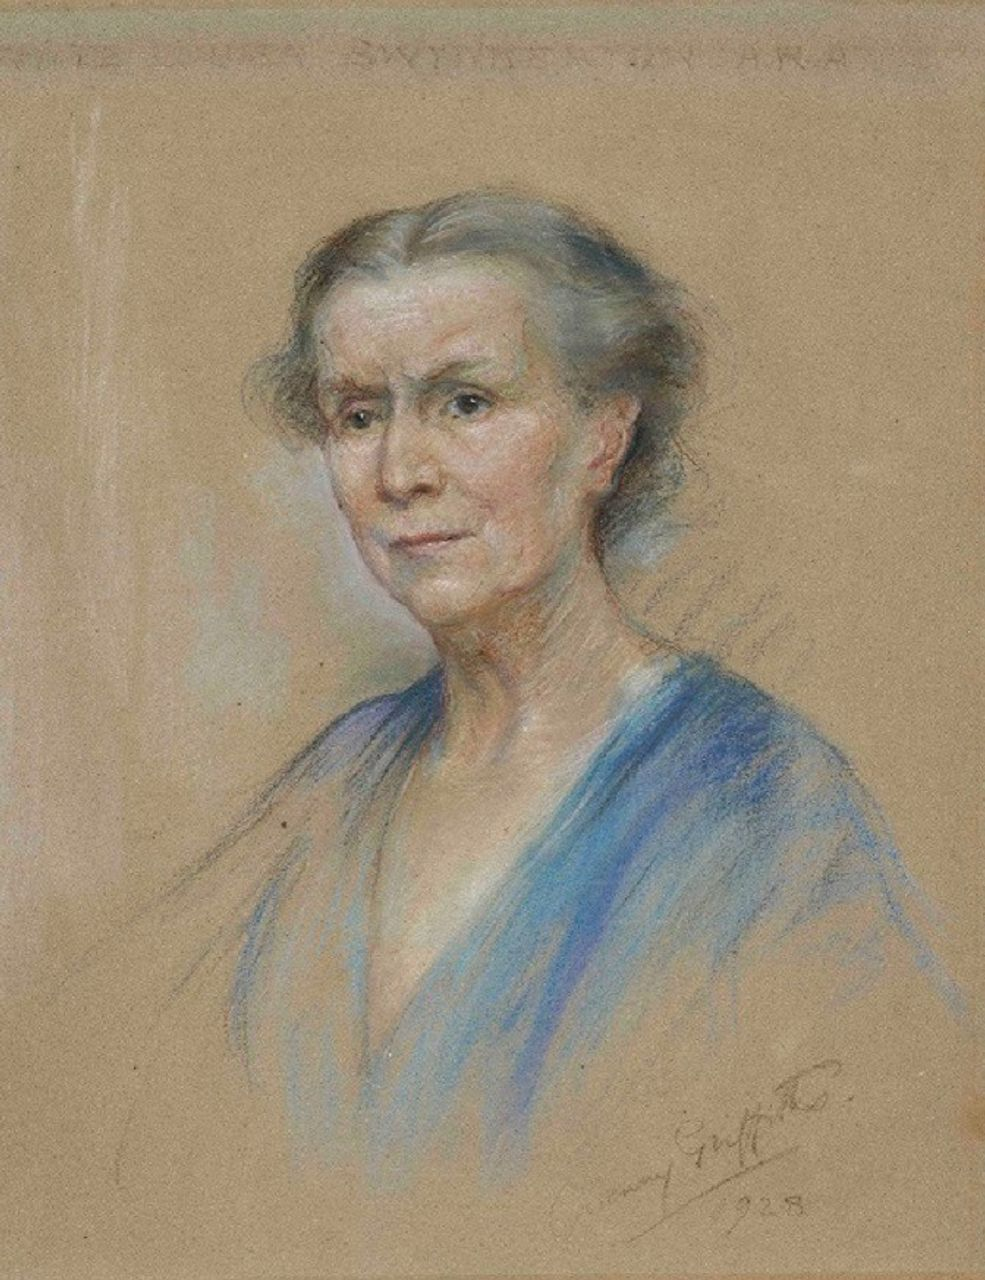 Mrs L Swynnerton, 1928, by Gwenny Griffiths, courtesy of Manchester Art Gallery